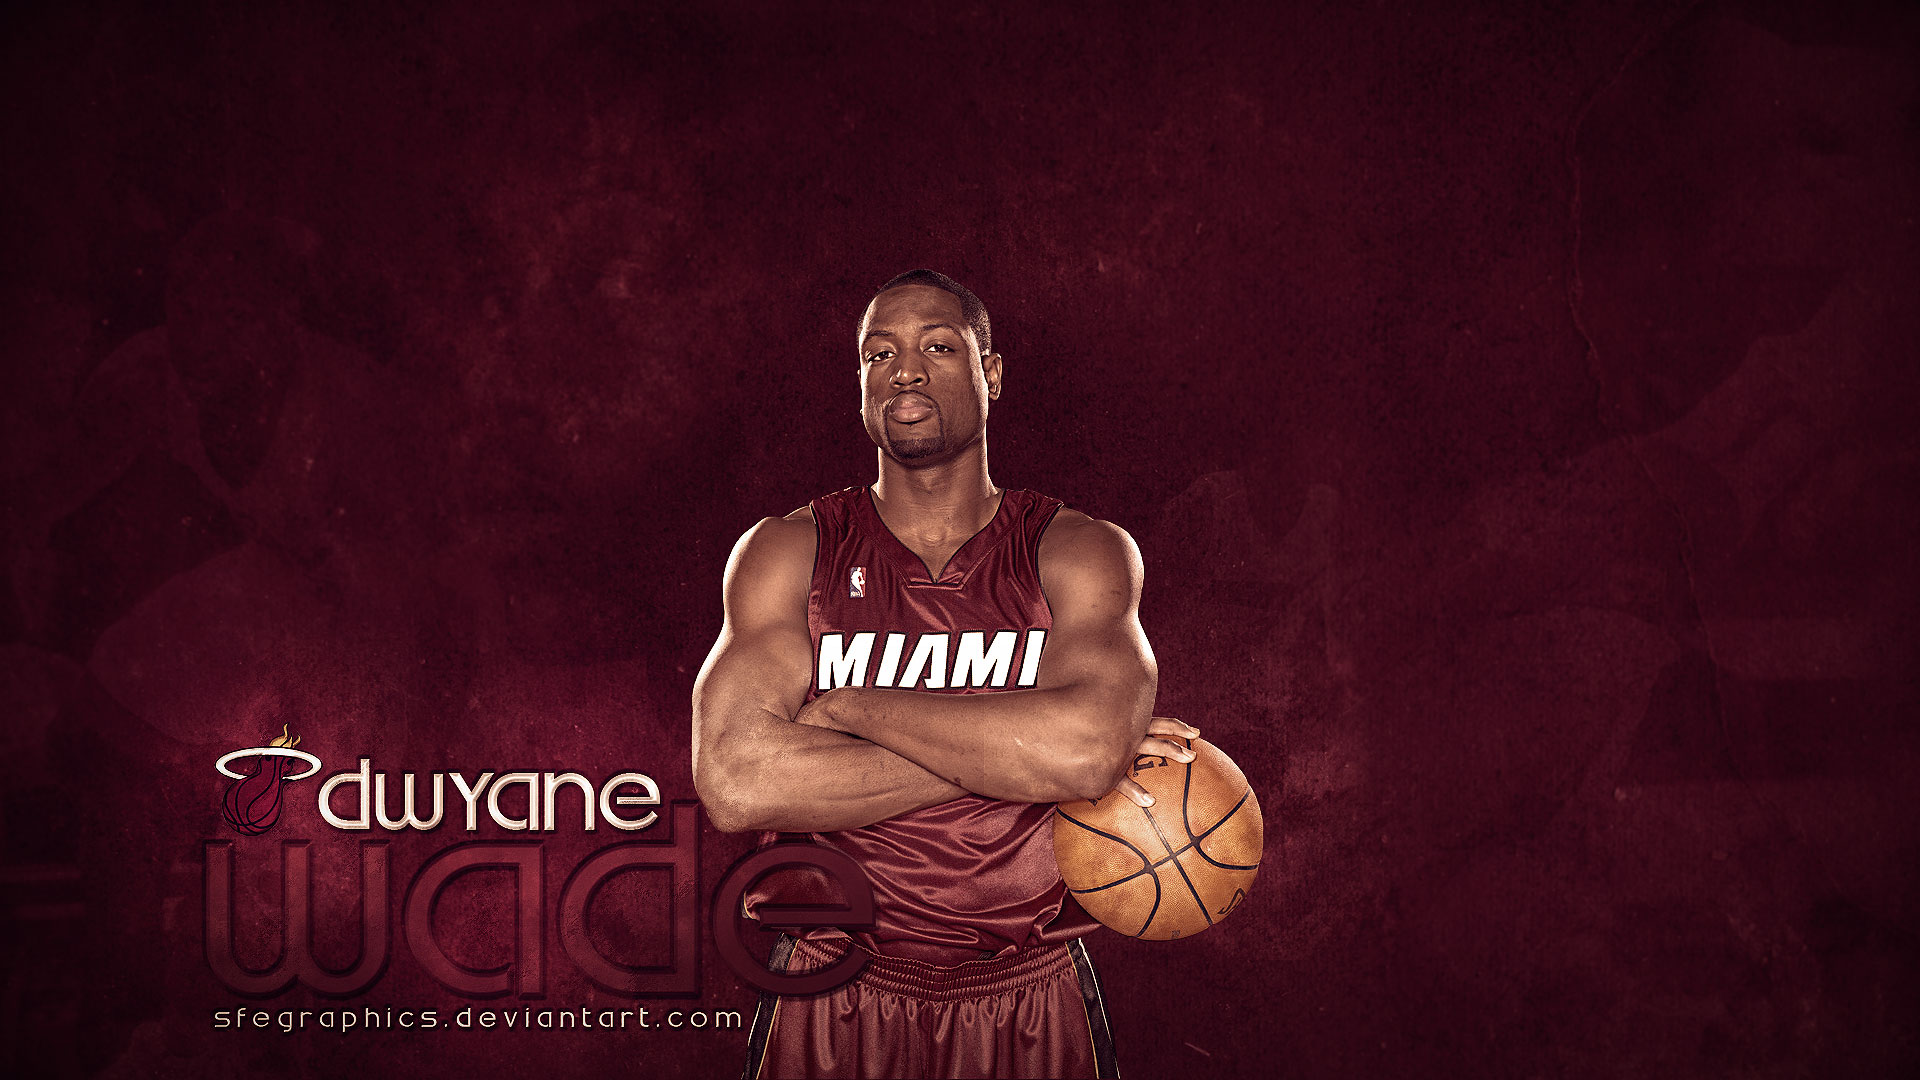 dwyane wade wallpapers | basketball wallpapers at basketwallpapers